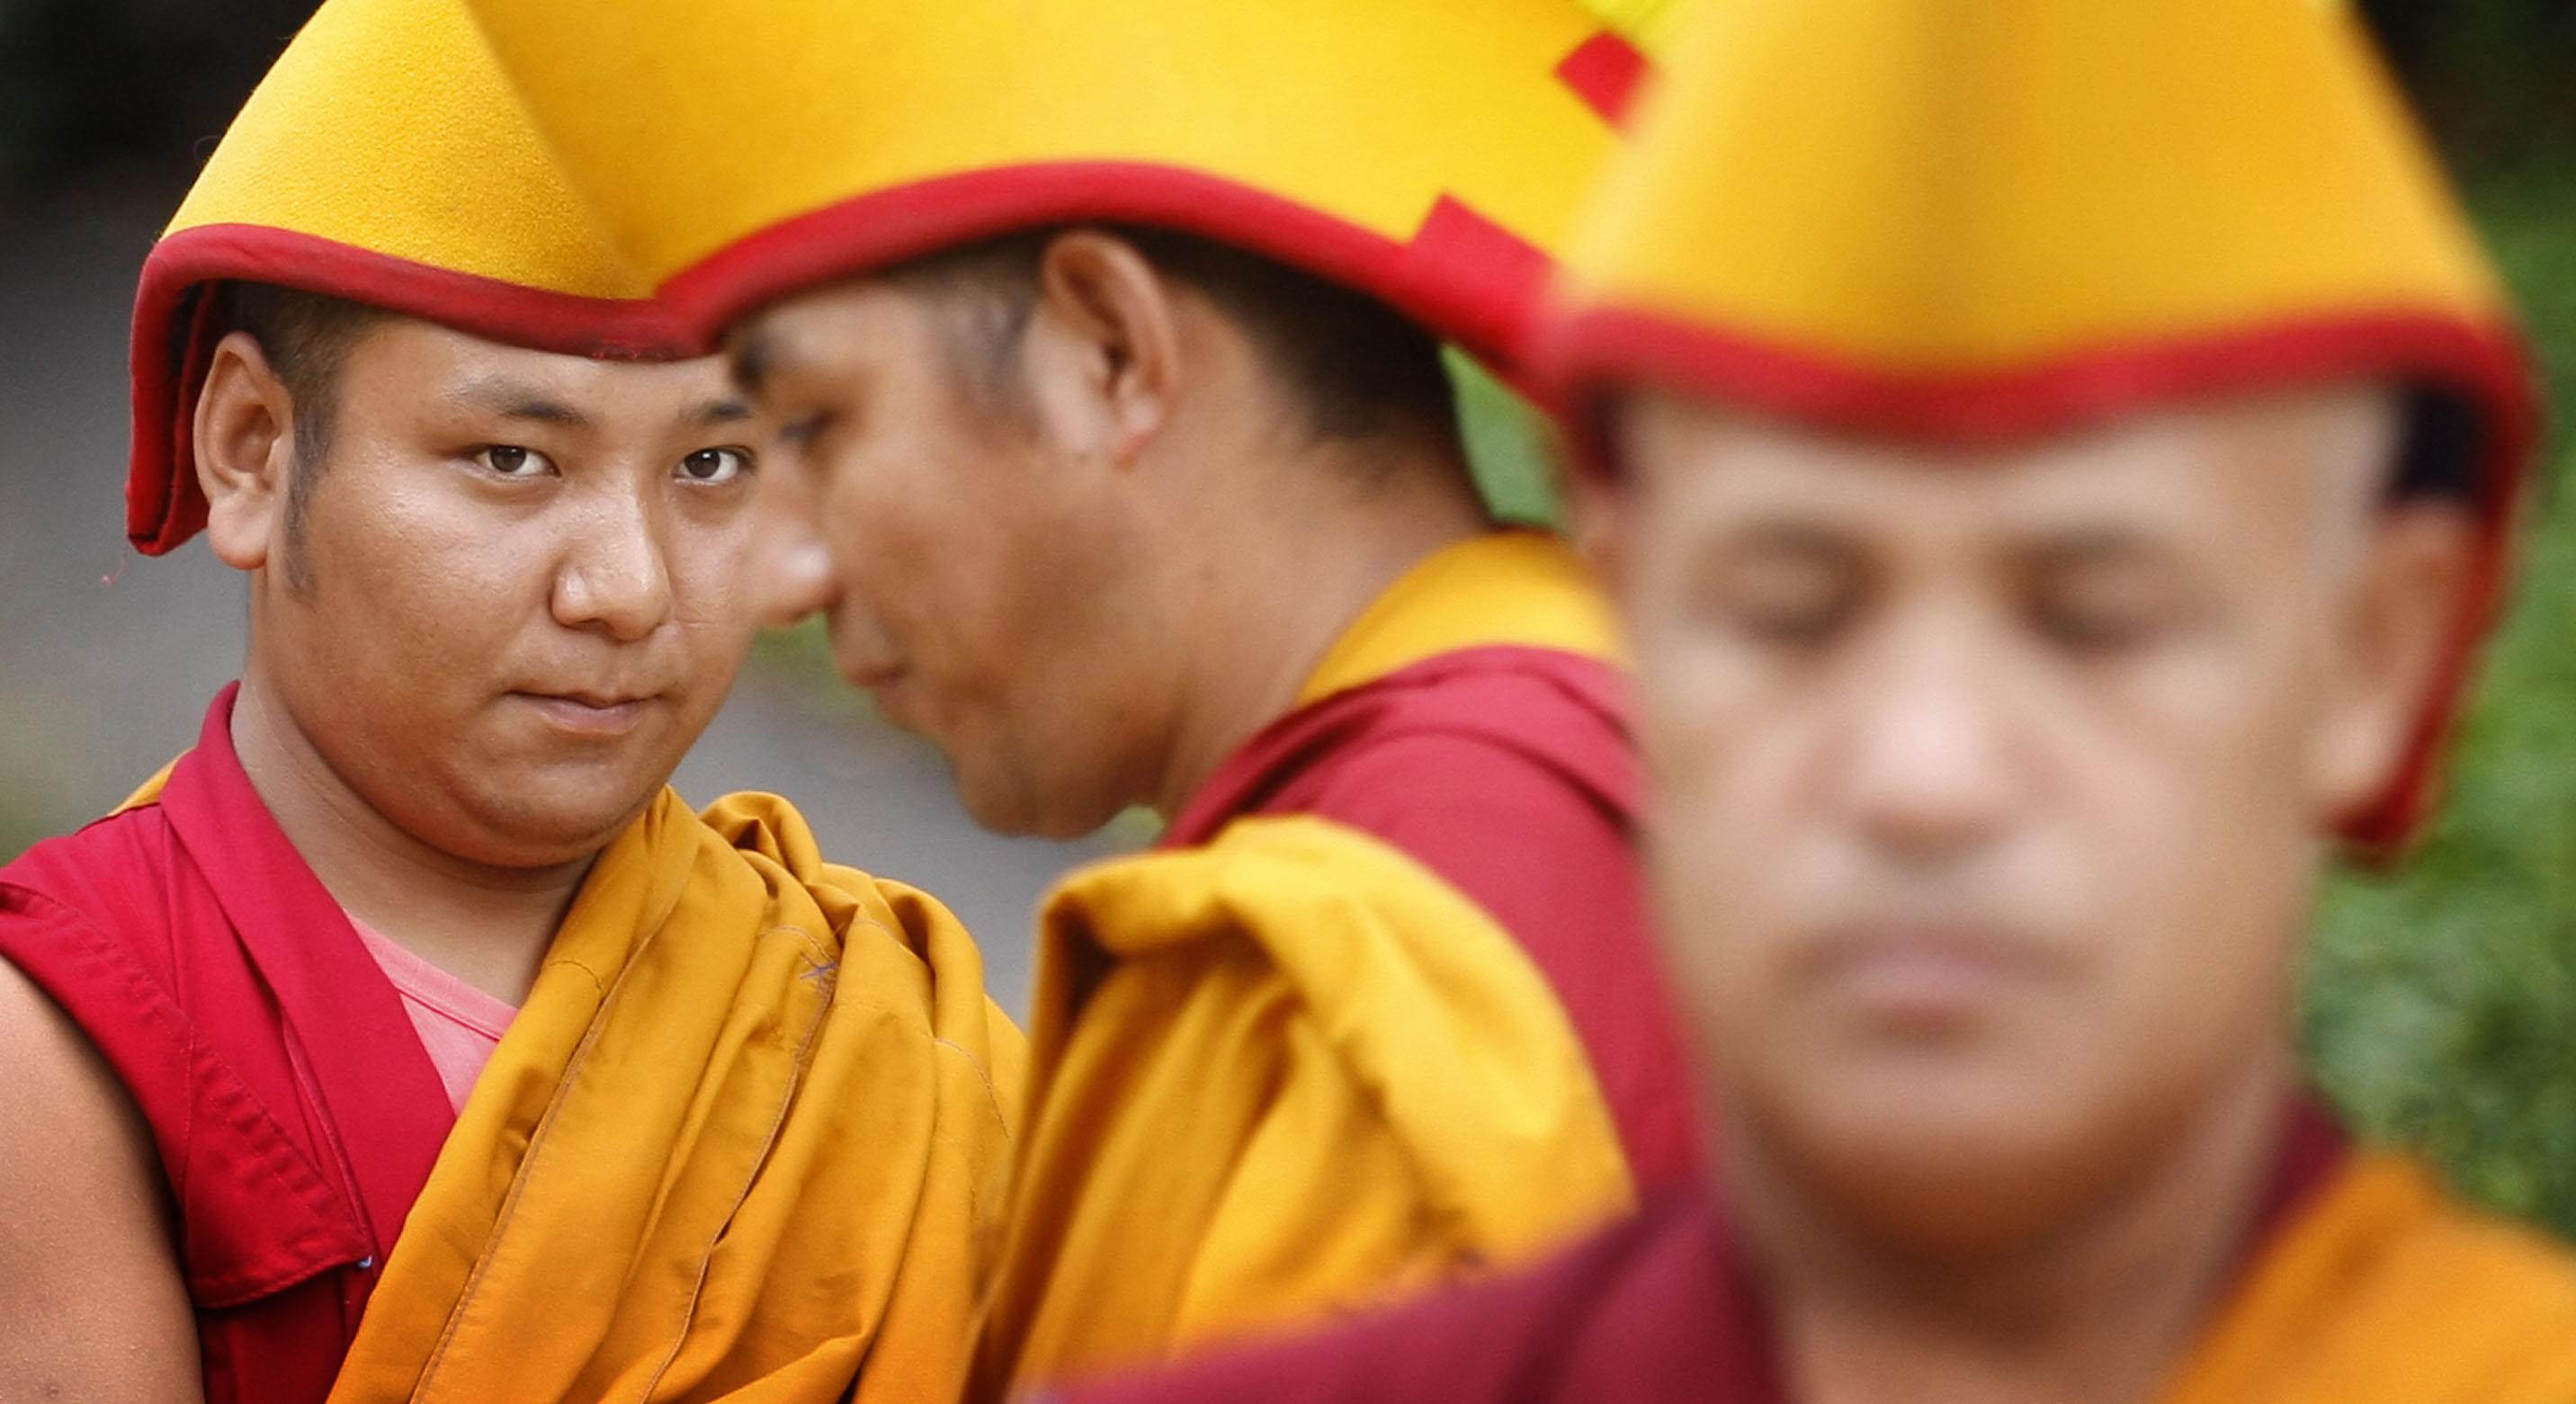 PA 9361989 You Can Now Rent A Buddhist Monk Online, Because Amazon